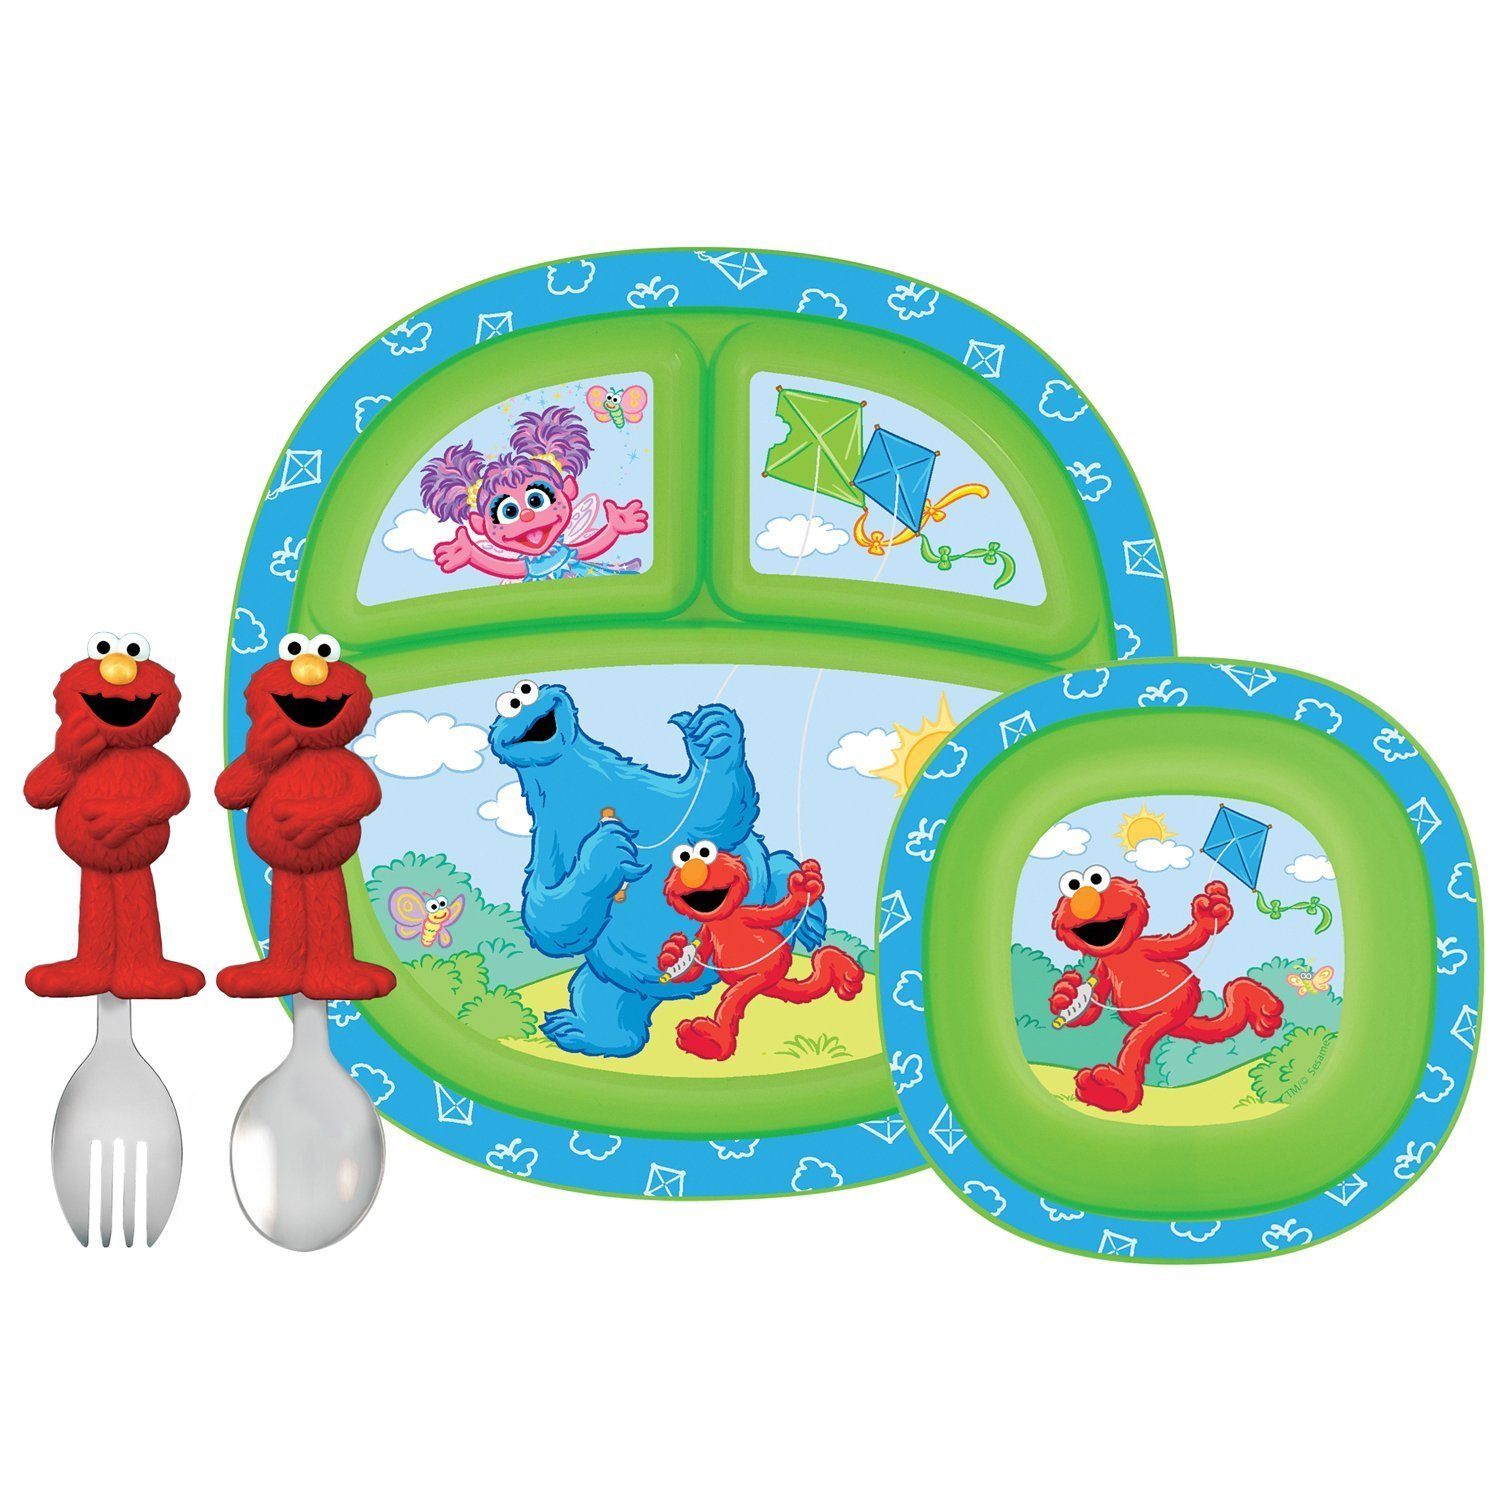 Gift Ideas For Kids Crazy About Elmo